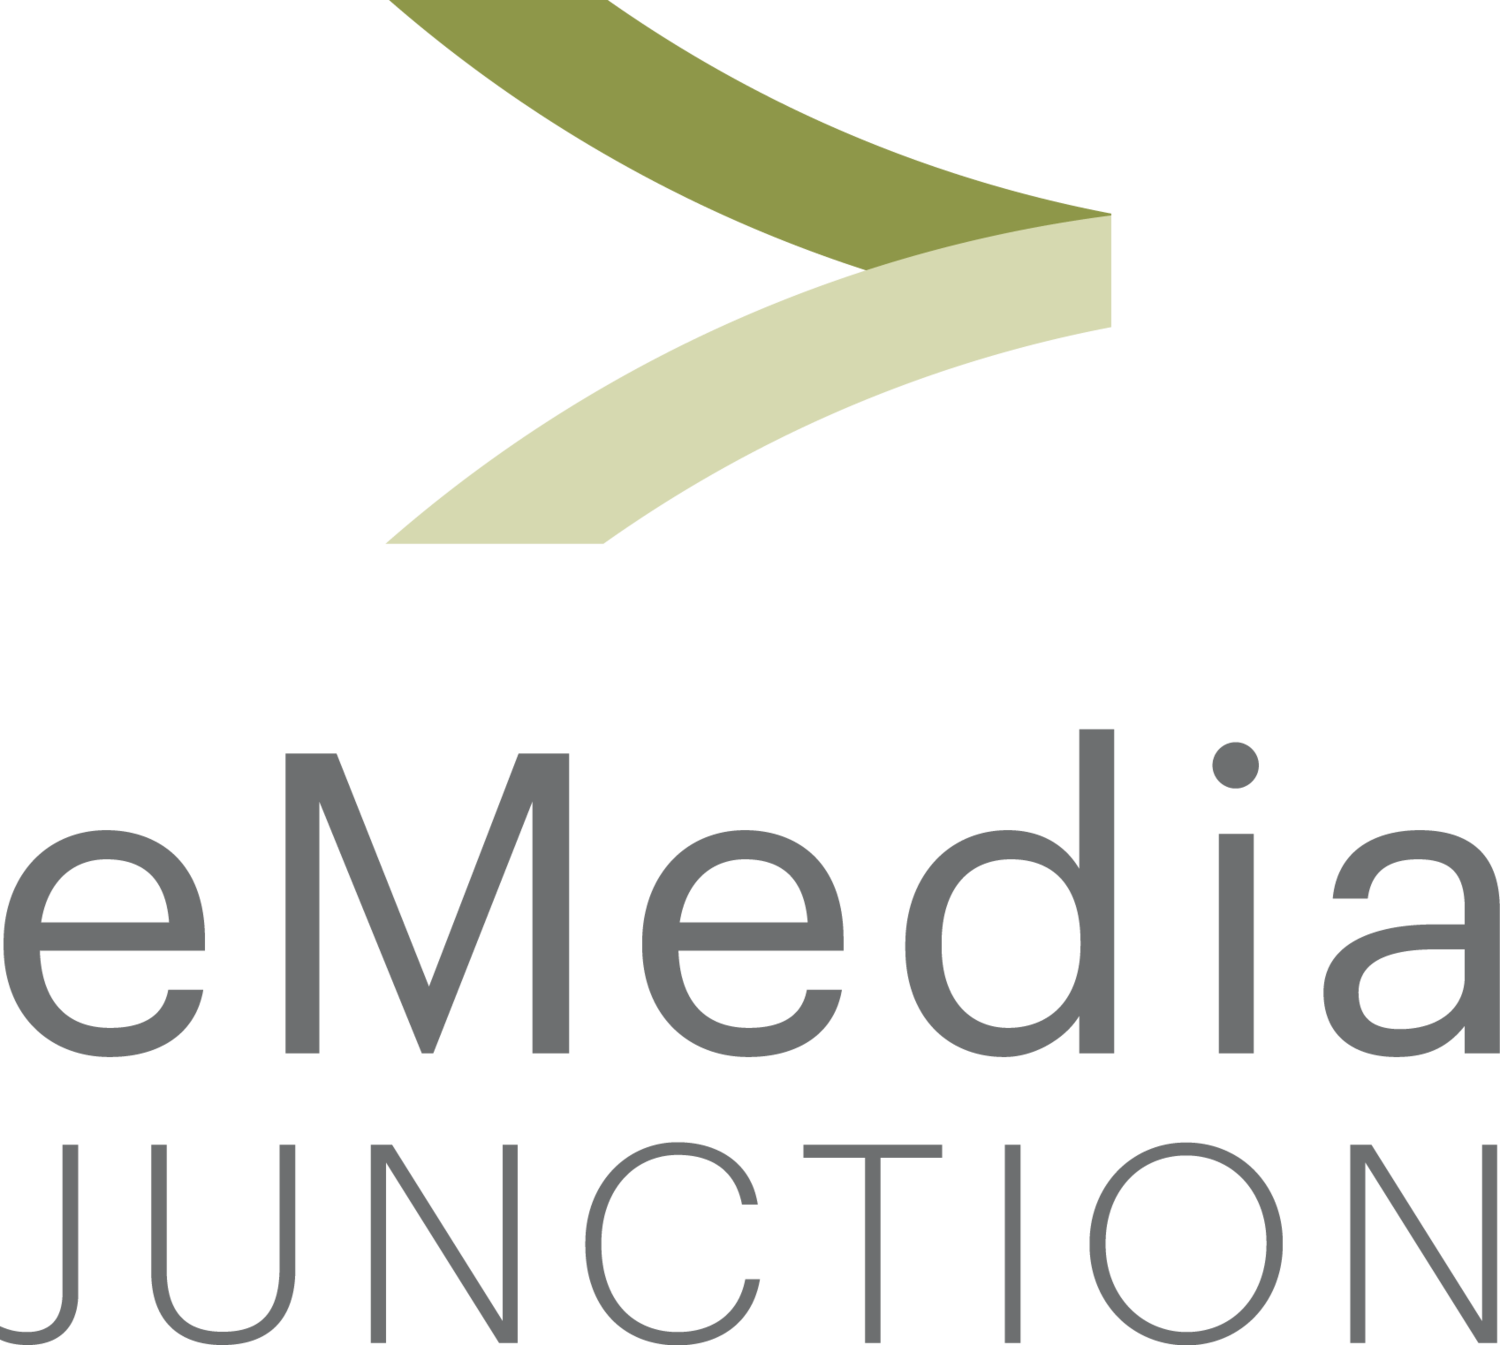 eMedia Junction